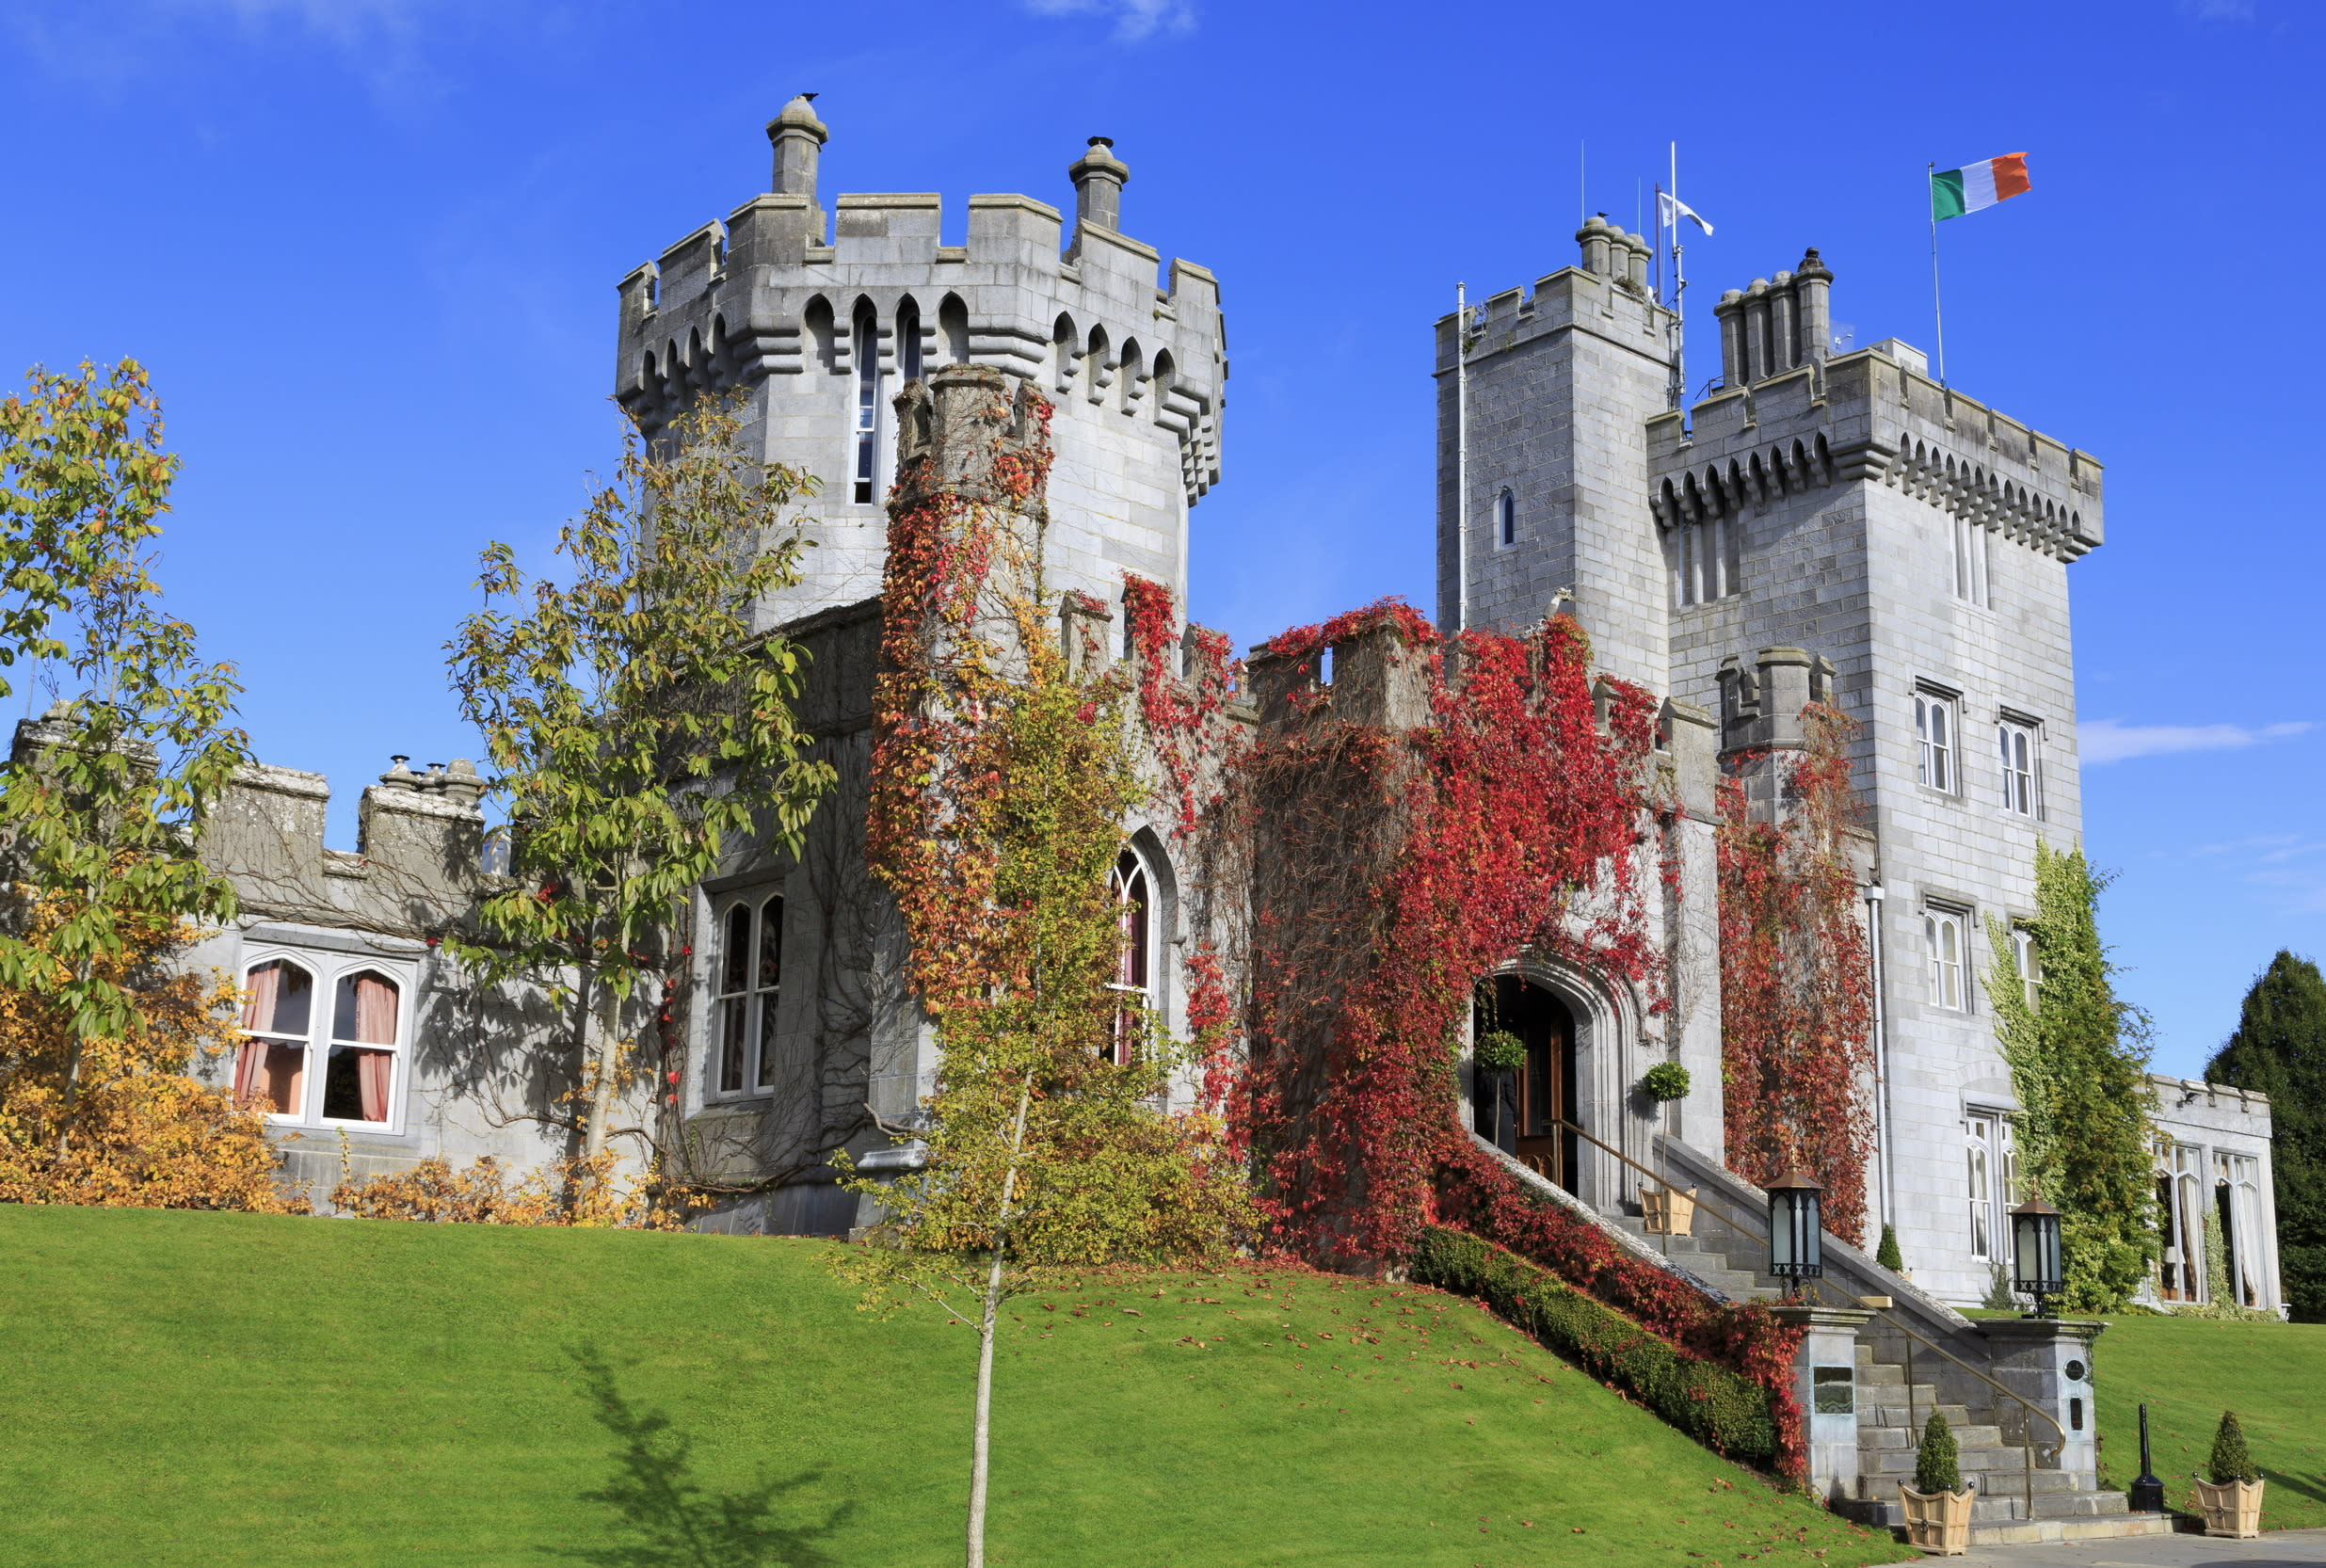 """<p>Ireland's largest five-star resort outside of Dublin, 17<sup>th</sup> century <a href=""""http://www.dromoland.ie/"""" target=""""_blank"""">Dromoland Castle</a>, is perfect for romantics. Book yourself into the secluded cottage inside the walls of Dromoland castle and have a honeymoon fit for royalty. 'Castle Keep Cottage' is luxurious in every sense of the word: there's a jacuzzi, and the master bedroom overlooks beautiful 17th-century gardens and Lough Dromoland. Think Irish heirlooms chandeliers, hand-carved paneling, oil paintings, custom-made carpets and draperies. By day, live like kings and queens and wander through the charming gardens and surroundings, or make use of the full-service health spa and beauty salon. By night dine like royalty in the castle's five-star award-winning restaurant, the Earl of Thomond,then retreat back to your private space with a bottle of bubbly.<span style=""""font-size:14px;"""">Tip: If you can't afford the cottage (or it's fully booked on your dates), the rooms in the club wing of the castle (complete with oversized windows and nine-foot ceiling) are also very grand, and have sumptuous upholstery and furnishings.</span></p>"""